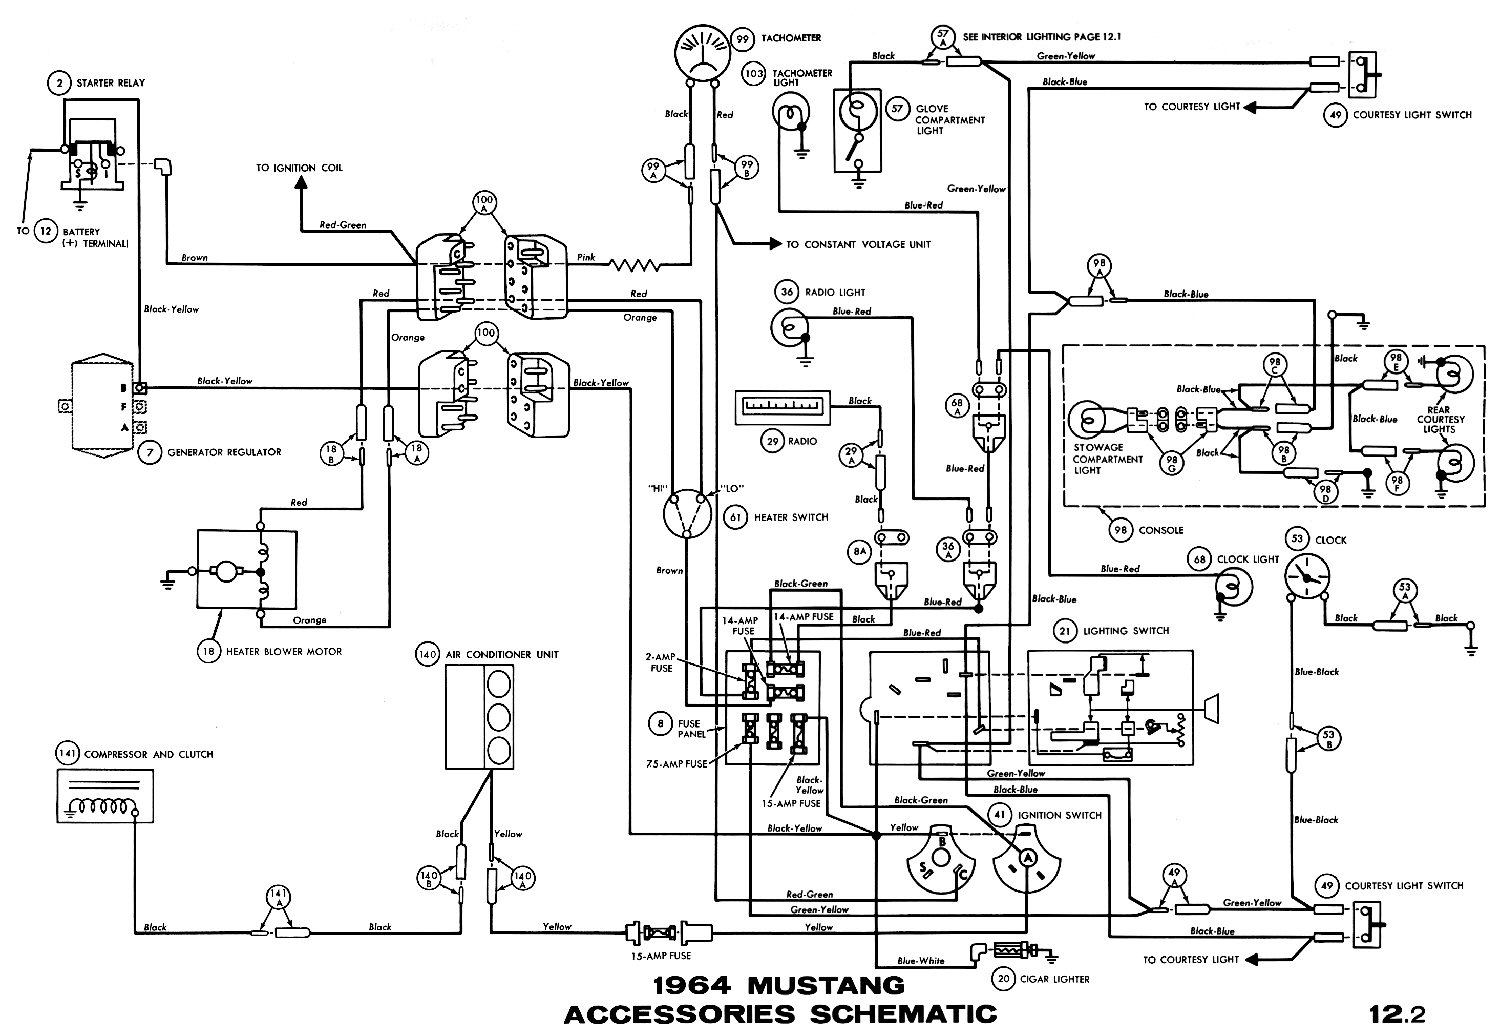 1970 Mustang Coupe Wiring Diagram - Wiring Diagrams Hubs on 1970 mustang dash lights, 1970 mustang parts, 1970 mustang oil filter, 1970 mustang mach 2, 1970 mustang colors, 1970 mustang rear window trim, 1970 mustang hatchback, 1970 mustang ignition switch, ford mustang vacuum diagram, 1970 mustang sportsroof, 1970 mustang fuel pump, 1970 mustang notchback, 1969 mustang ignition switch diagram, 66 mustang electrical diagram, 1970 mustang wire harness, 2003 mustang fuse diagram, 1970 mustang black, 1970 mustang drive shaft, 70 ford mustang electrical diagram, 1970 mustang ford,